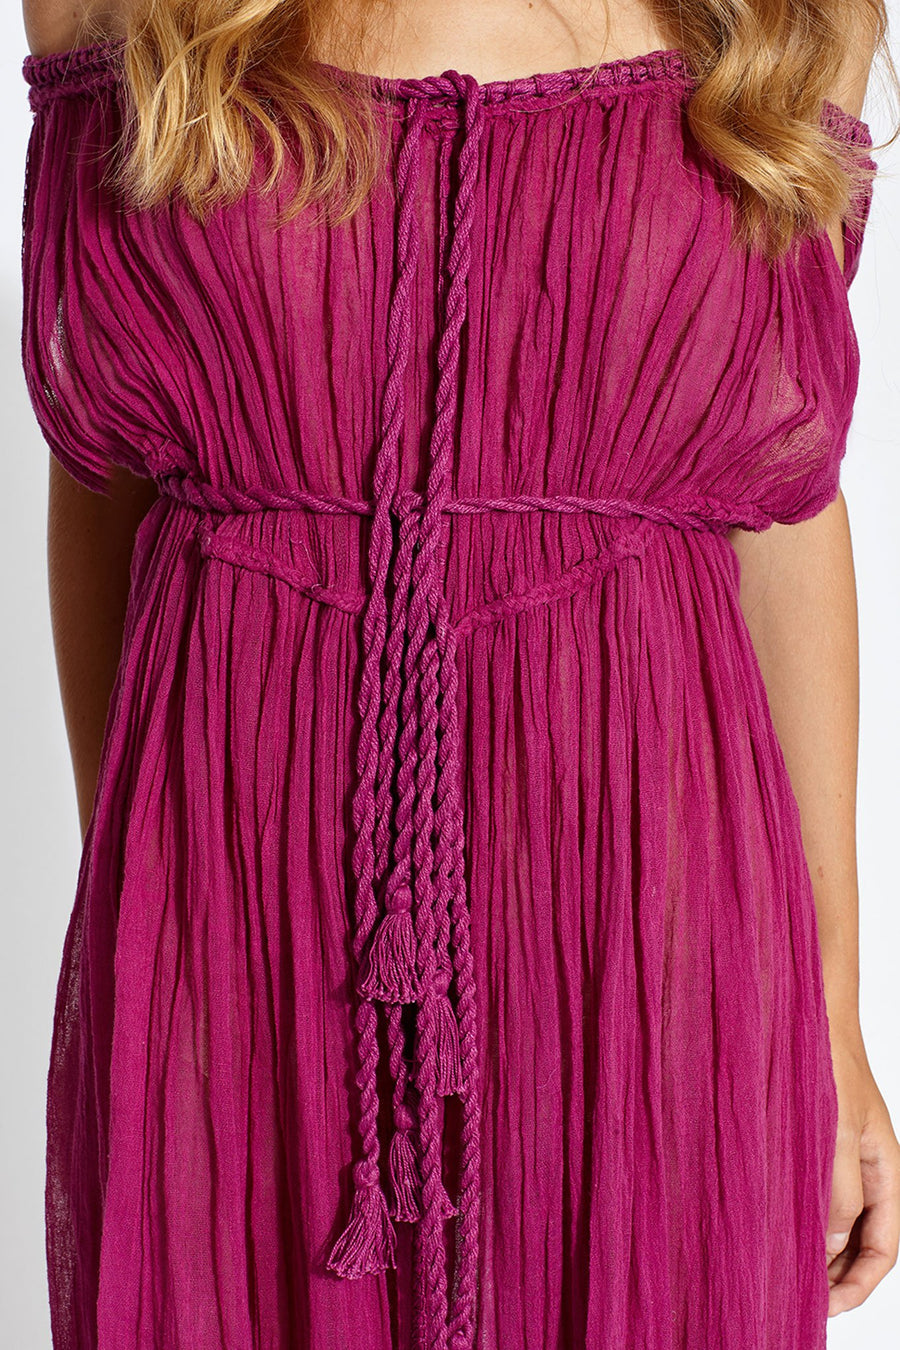 This is a detail photo of a magenta cotton gauze coverup dress with rope and tassel ties around center front and waist.